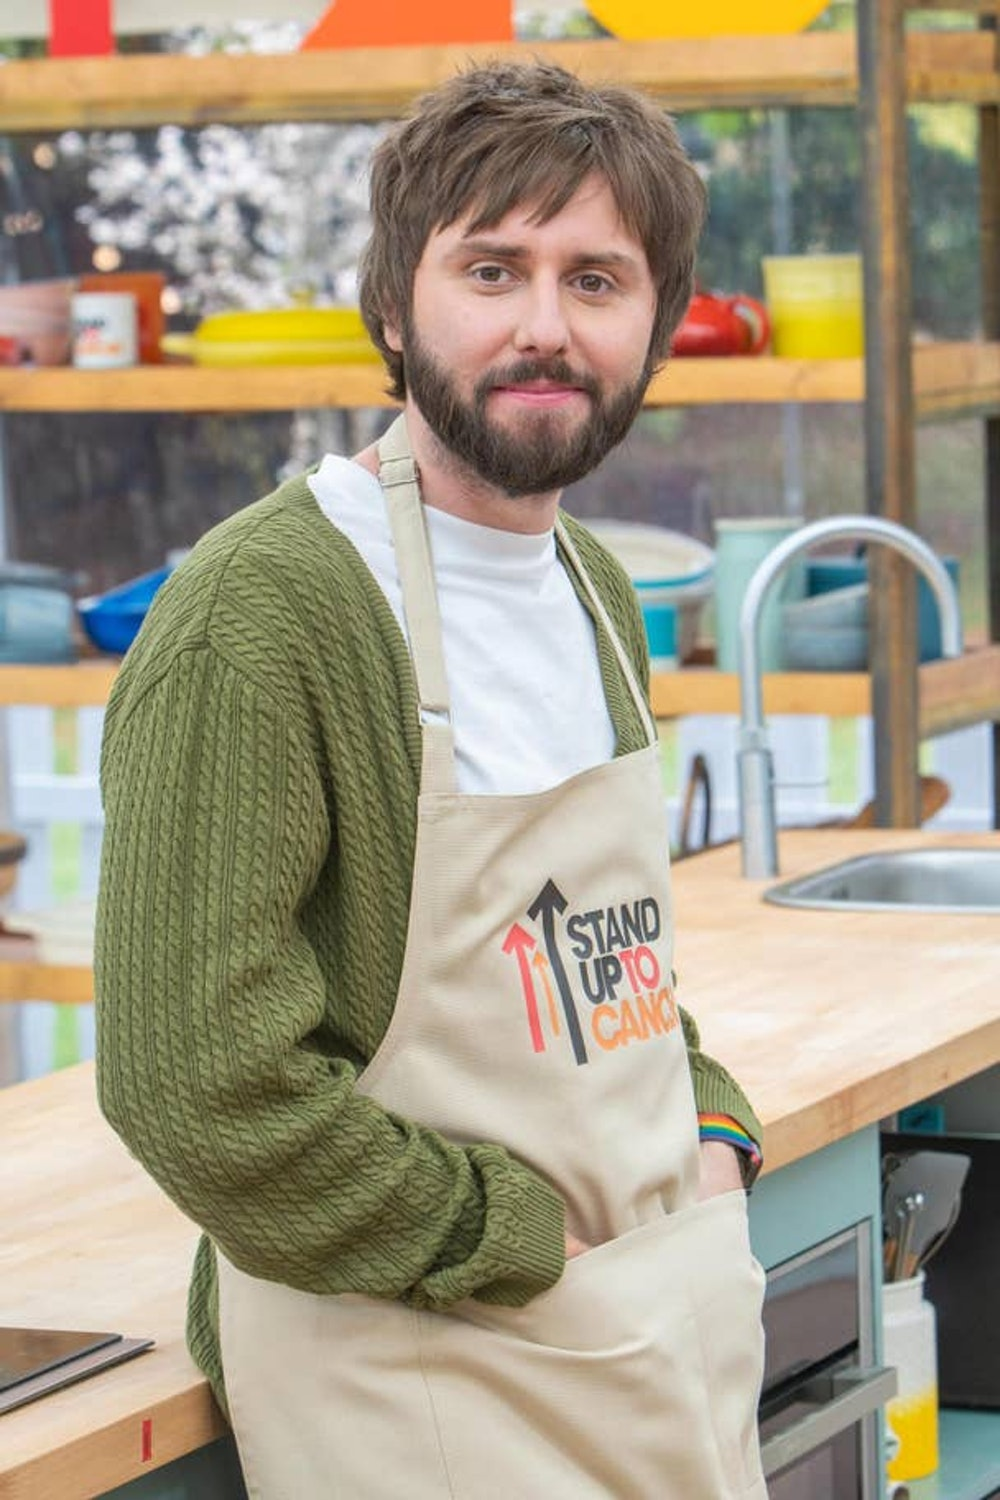 The Great Celebrity Bake Off is back for Stand Up To Cancer